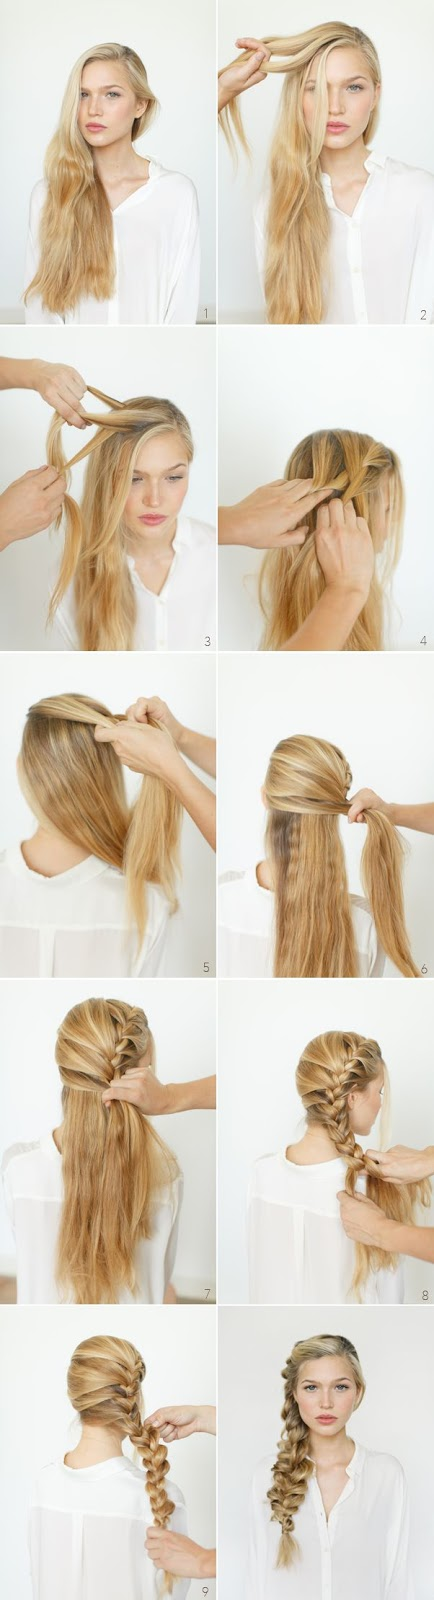 http://pophaircuts.com/step-by-step-hairstyles-for-long-hair-long-hairstyles-ideas